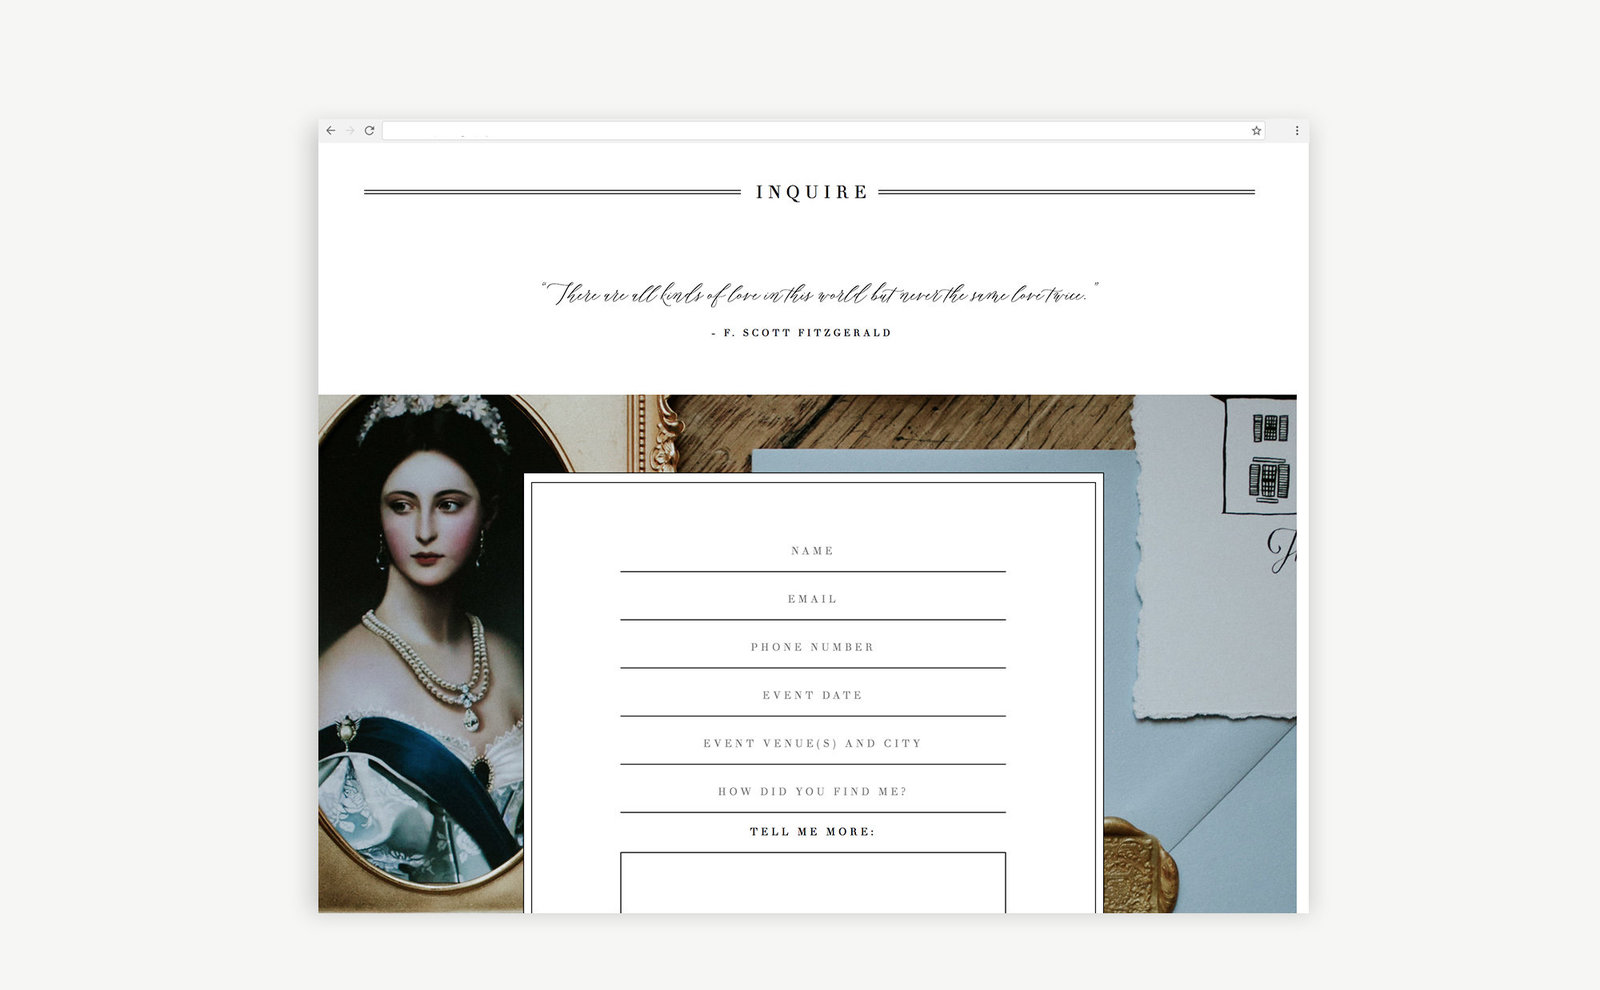 showit-website-branding-for-wedding-businesses-festoons-06